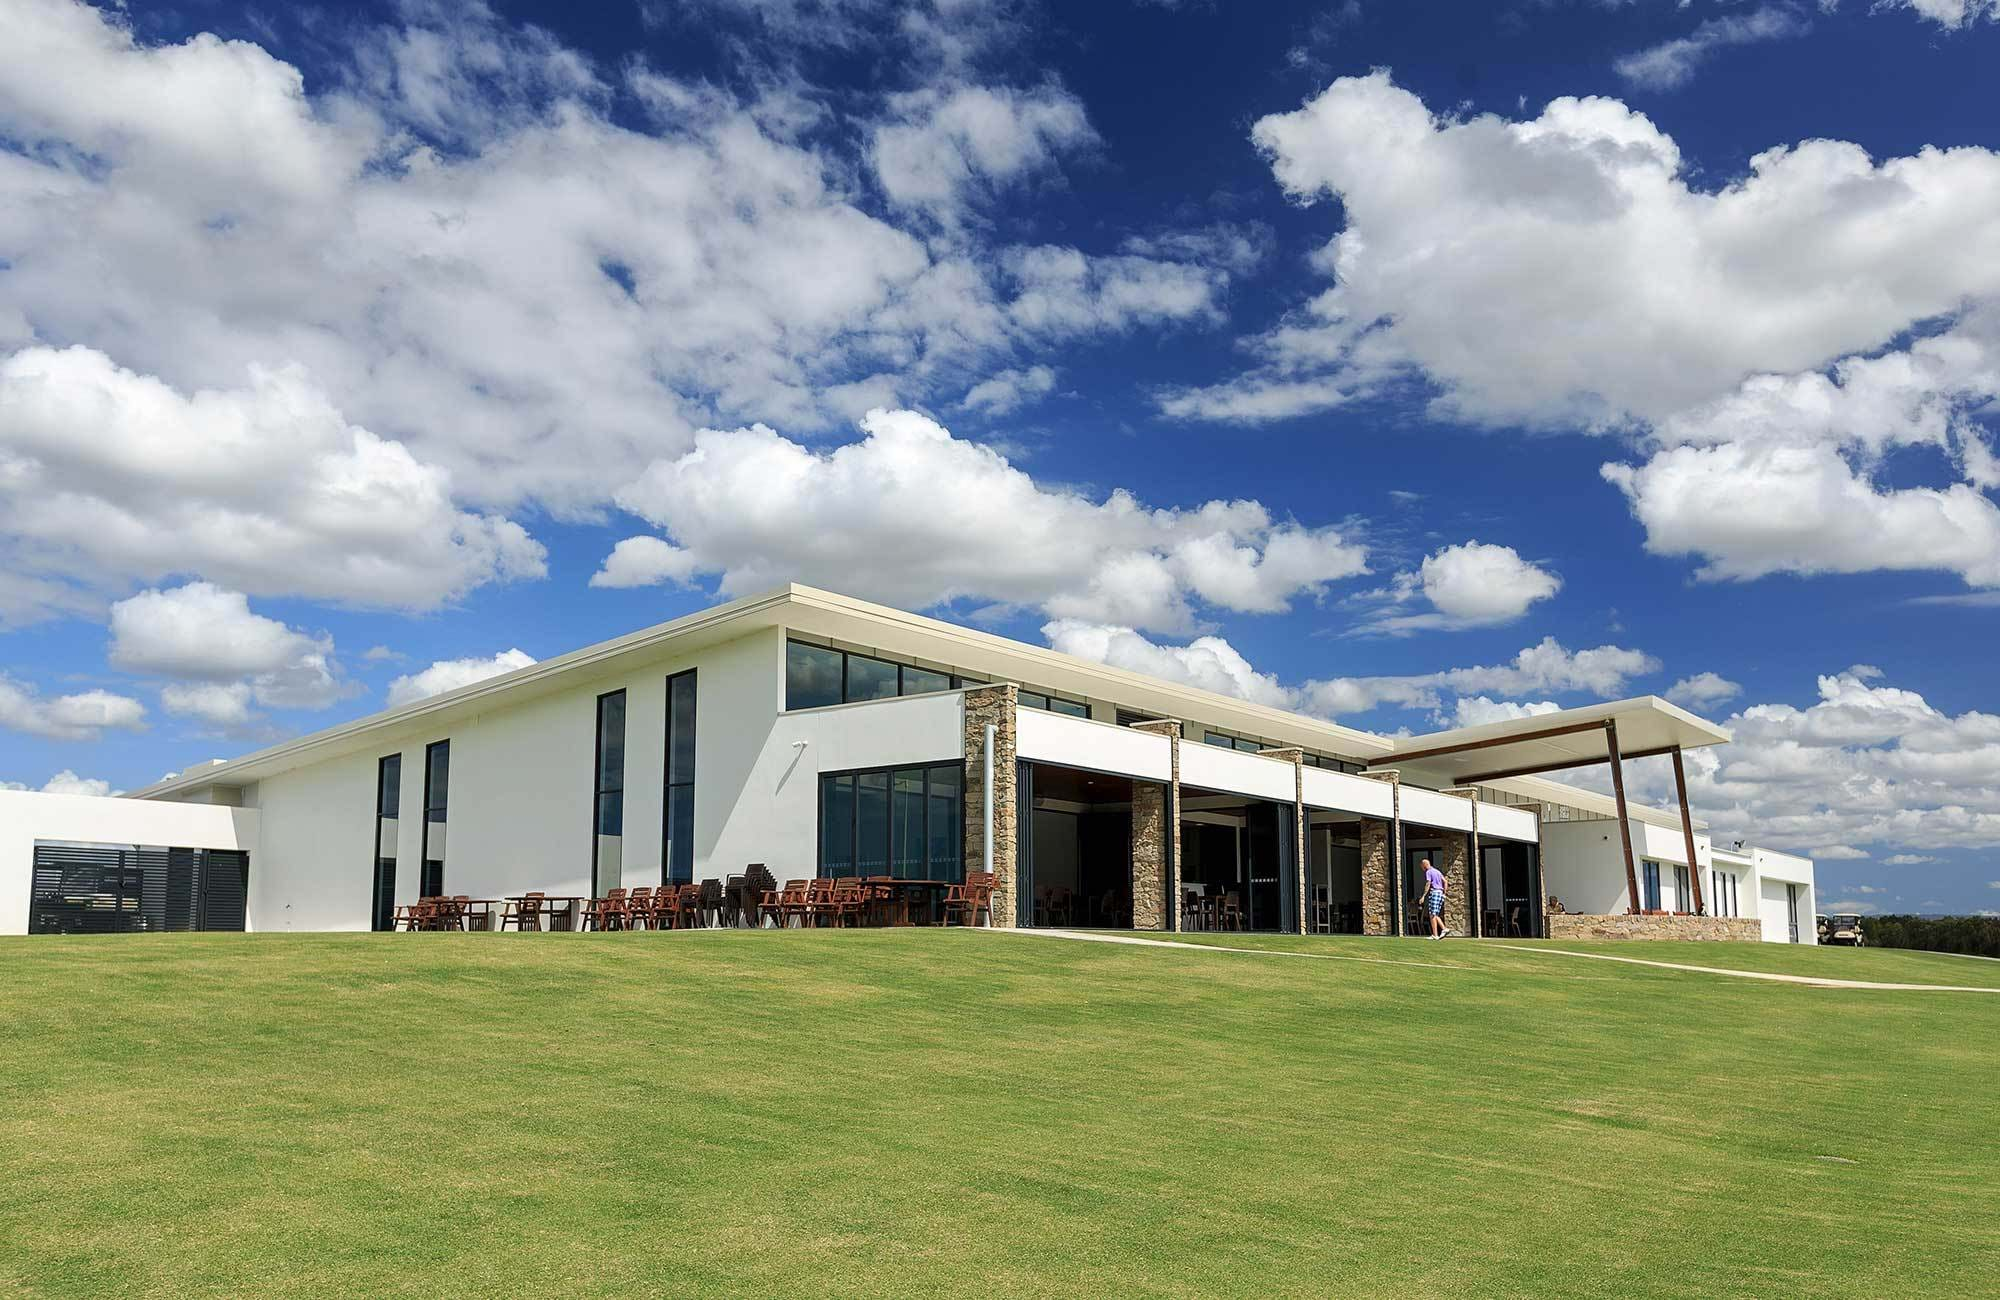 tafe-queensland-campus-under-blue-sky-cover